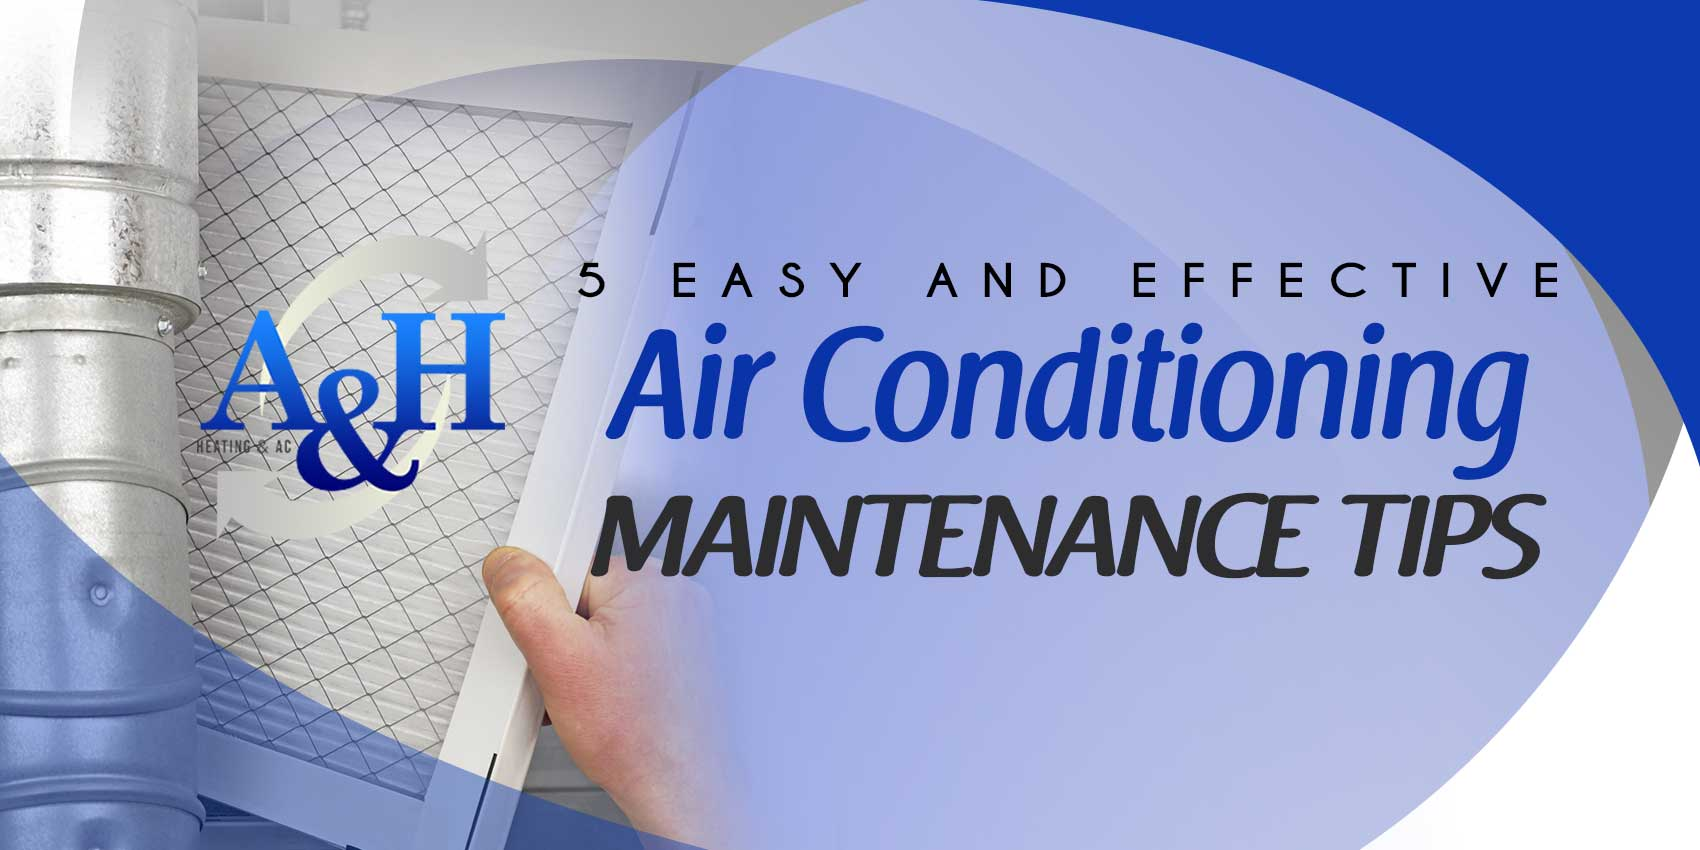 5 Easy and Effective Air Conditioning Maintenance Tips